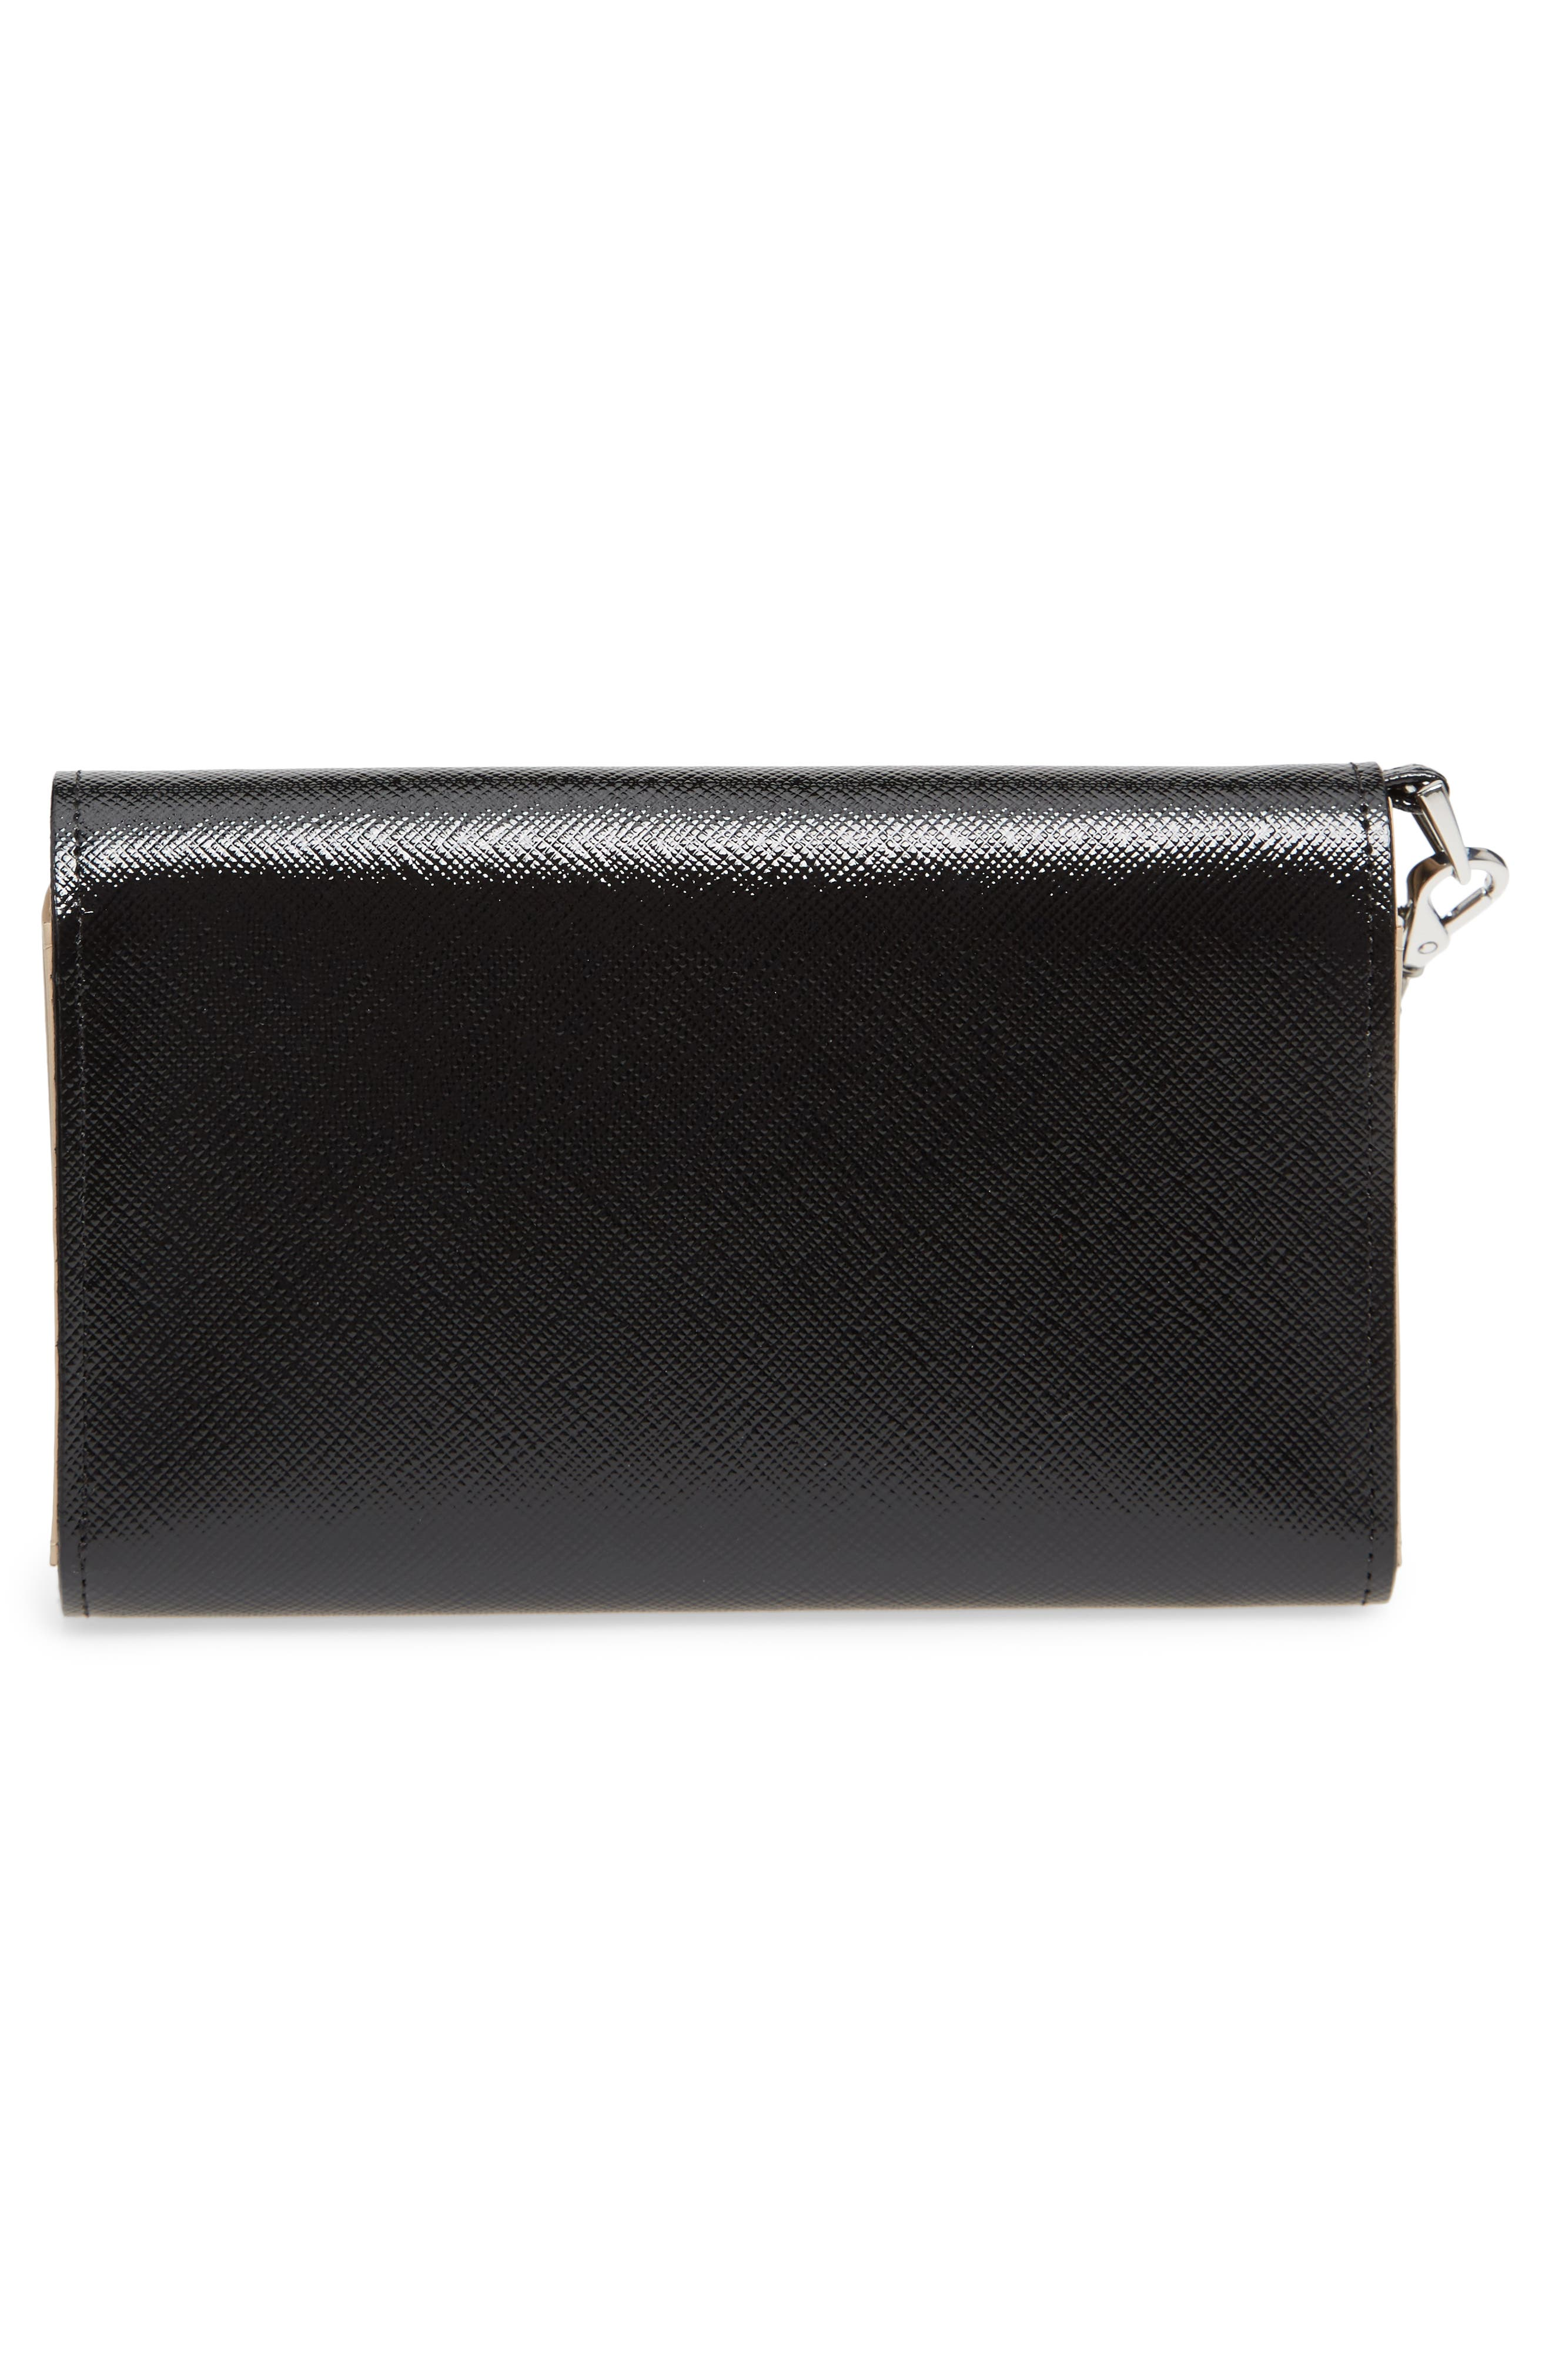 Trifold Leather Wallet,                             Alternate thumbnail 3, color,                             002